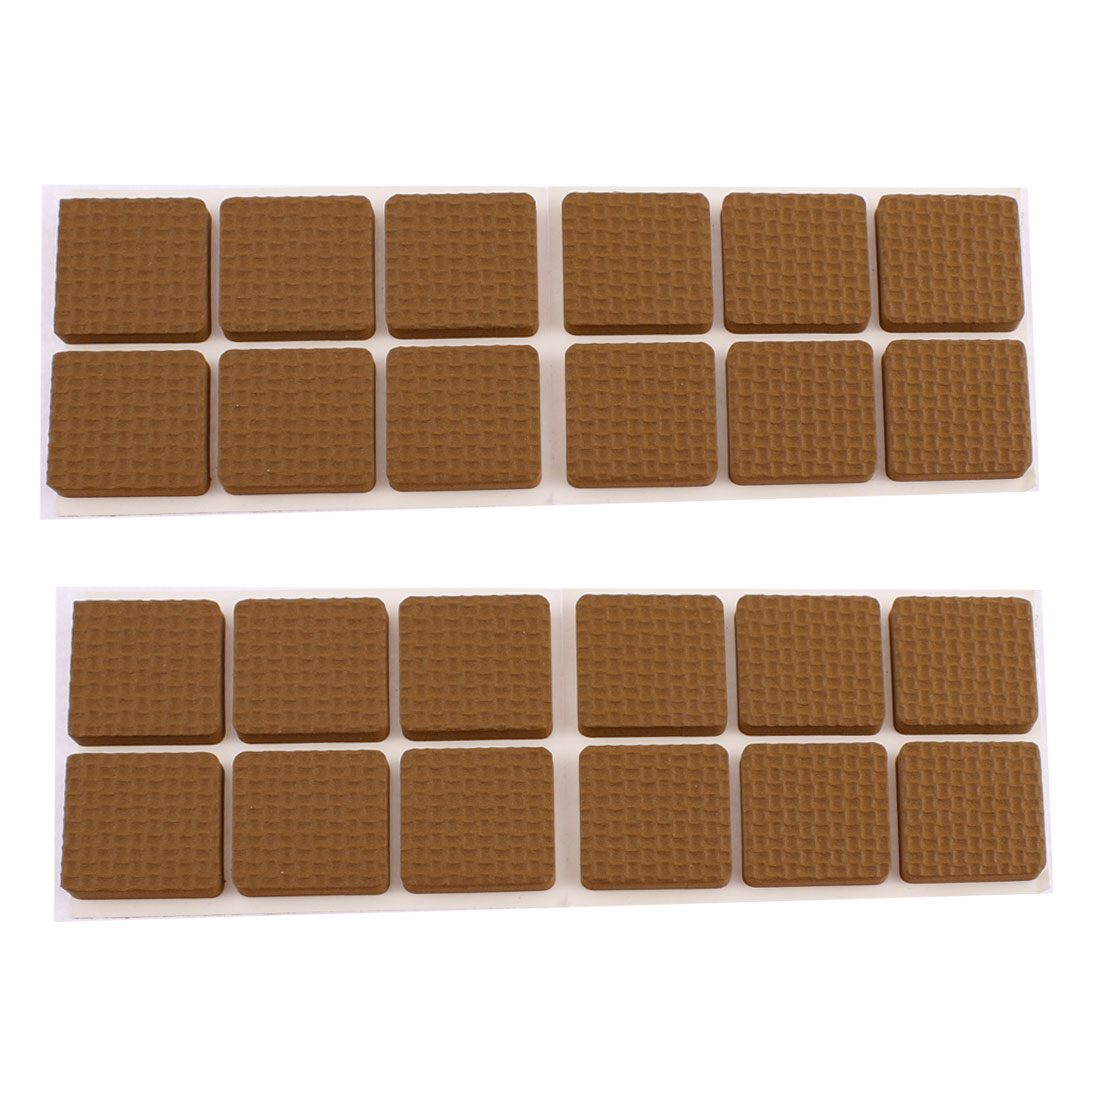 Unique Bargains 24 Pcs EVA Square 30mm x 30mm Self-adhesive Chair Foot Cover Table Furniture Leg Protector Brown